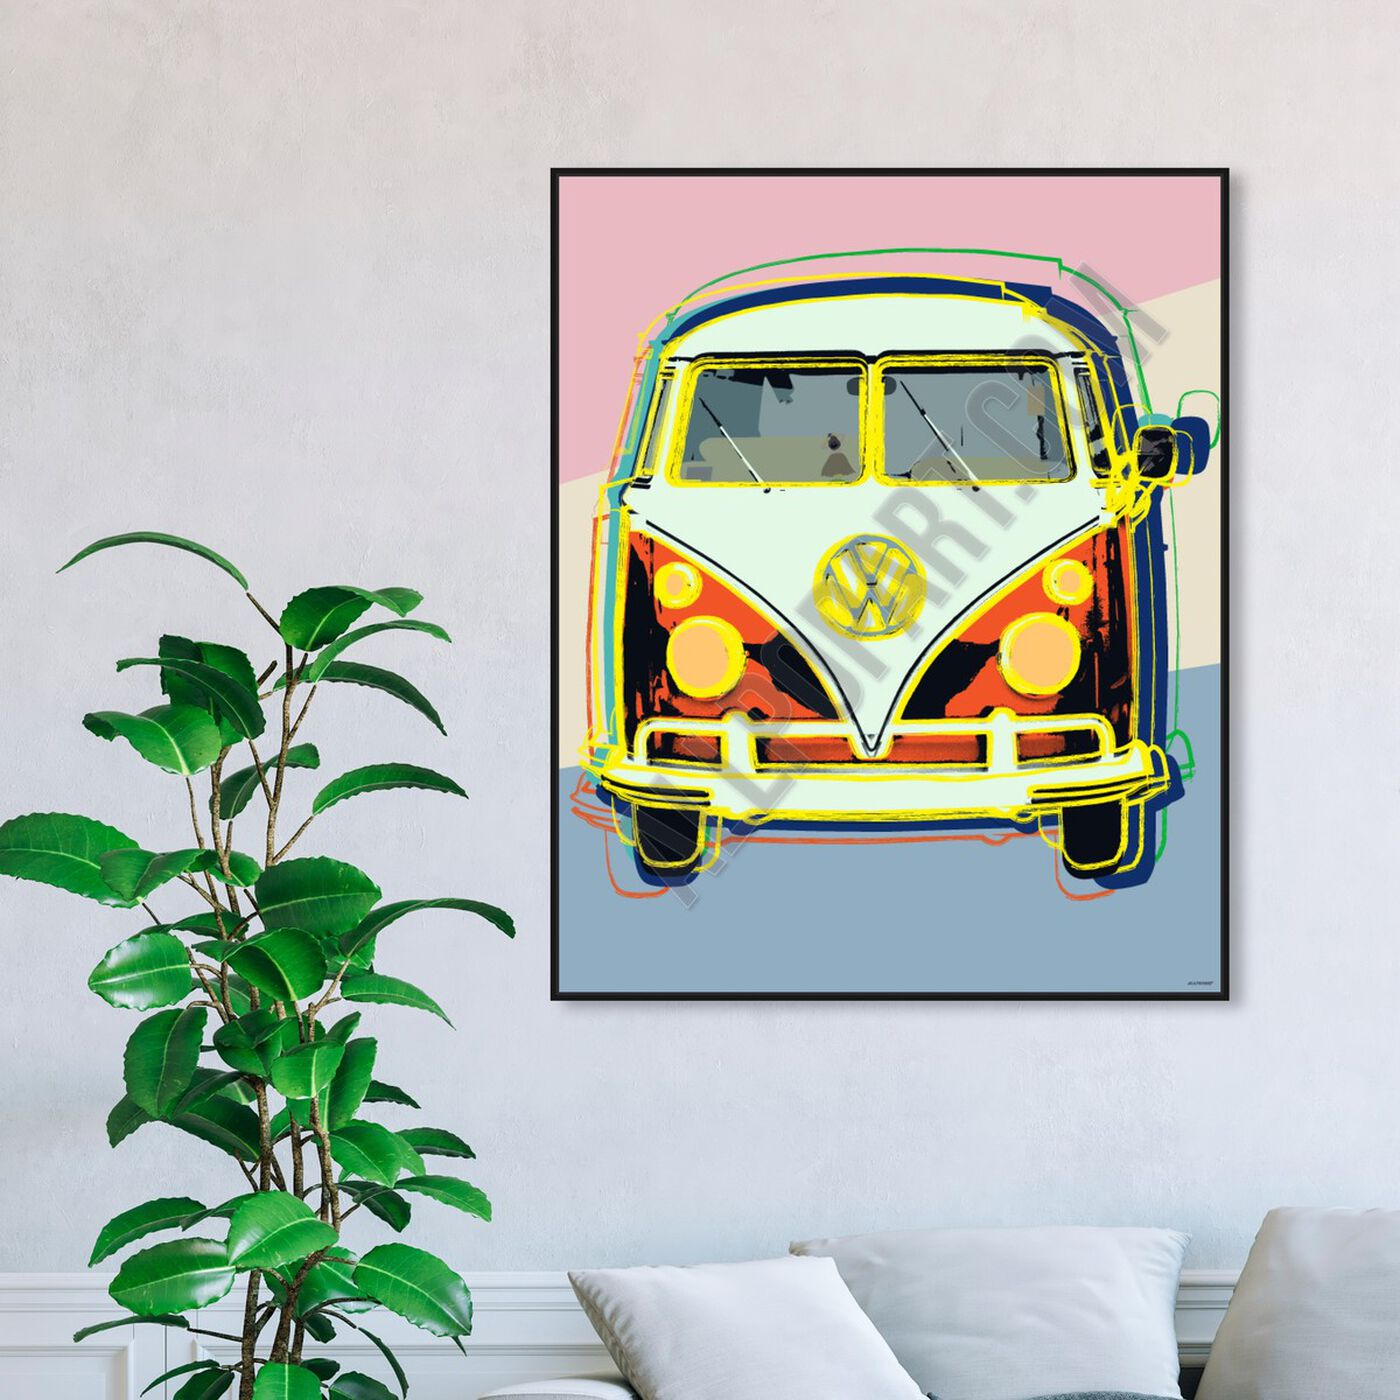 Hanging view of Classic Van featuring transportation and automobiles art.